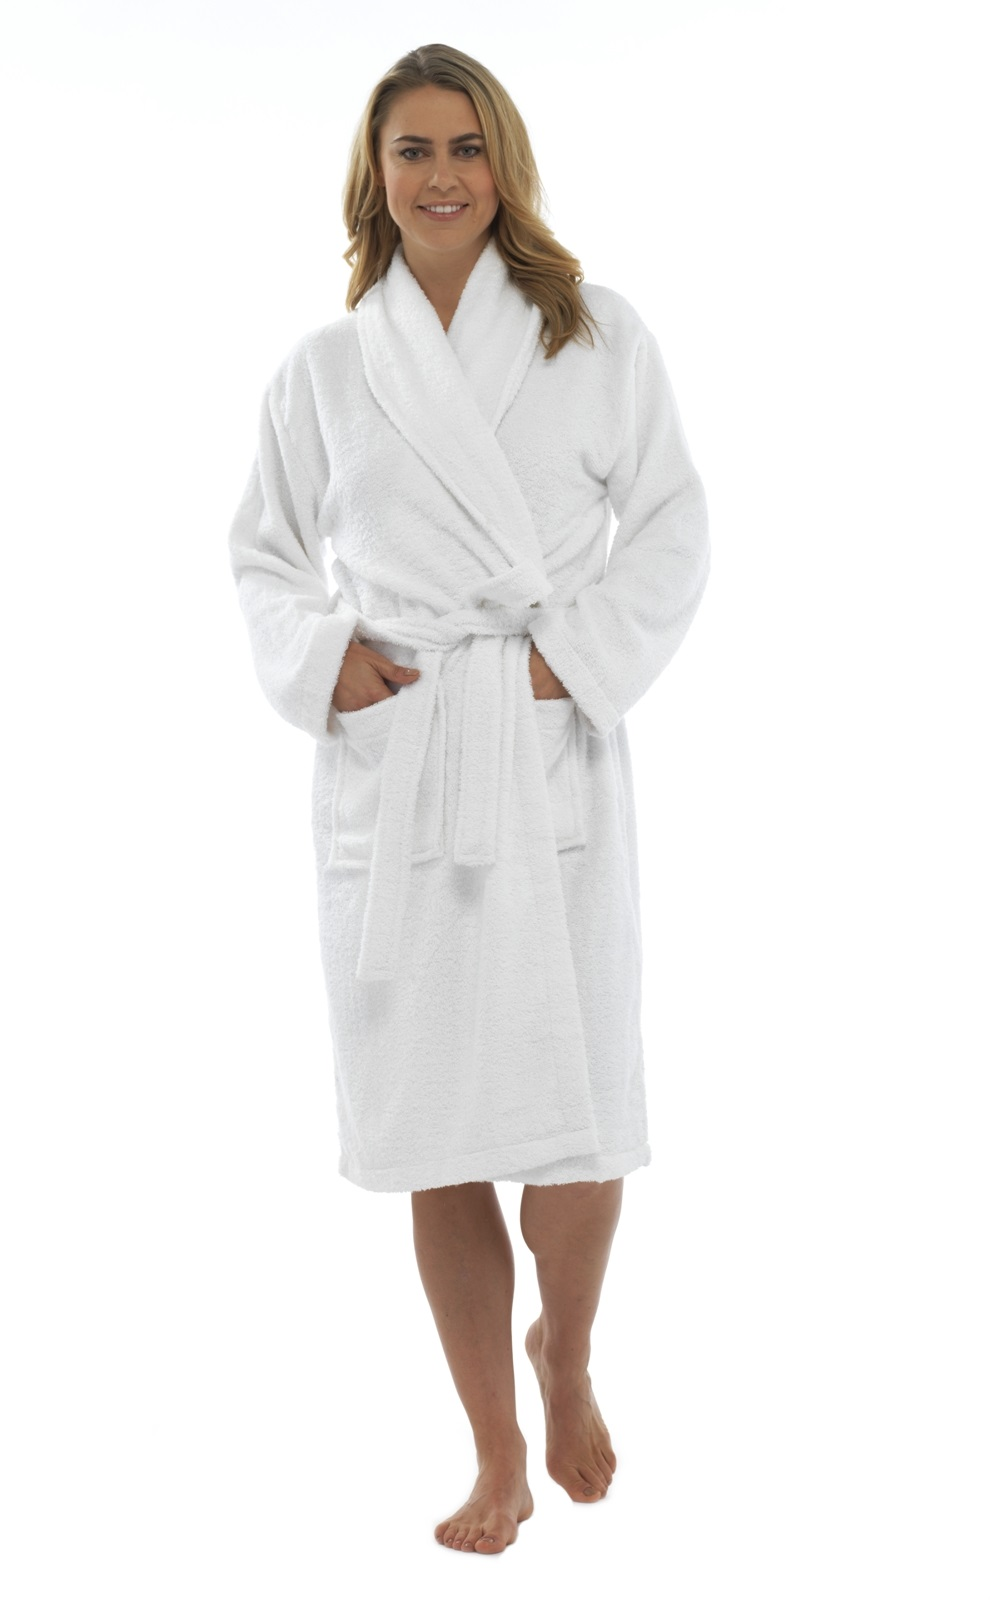 Ladies % Pure Cotton Zip Through Towelling Dressing Gown Robe Tom Franks See more like this. % Cotton Dressing Gown Terry Towelling Shawl Collar Bath Robe Slate Bathrobe. Brand New. % Luxury Terry Cotton Towelling Bath Robe Women Dressing Gowns & Kimono. Brand New · Robes. $ From India. Buy It Now. Free Shipping.